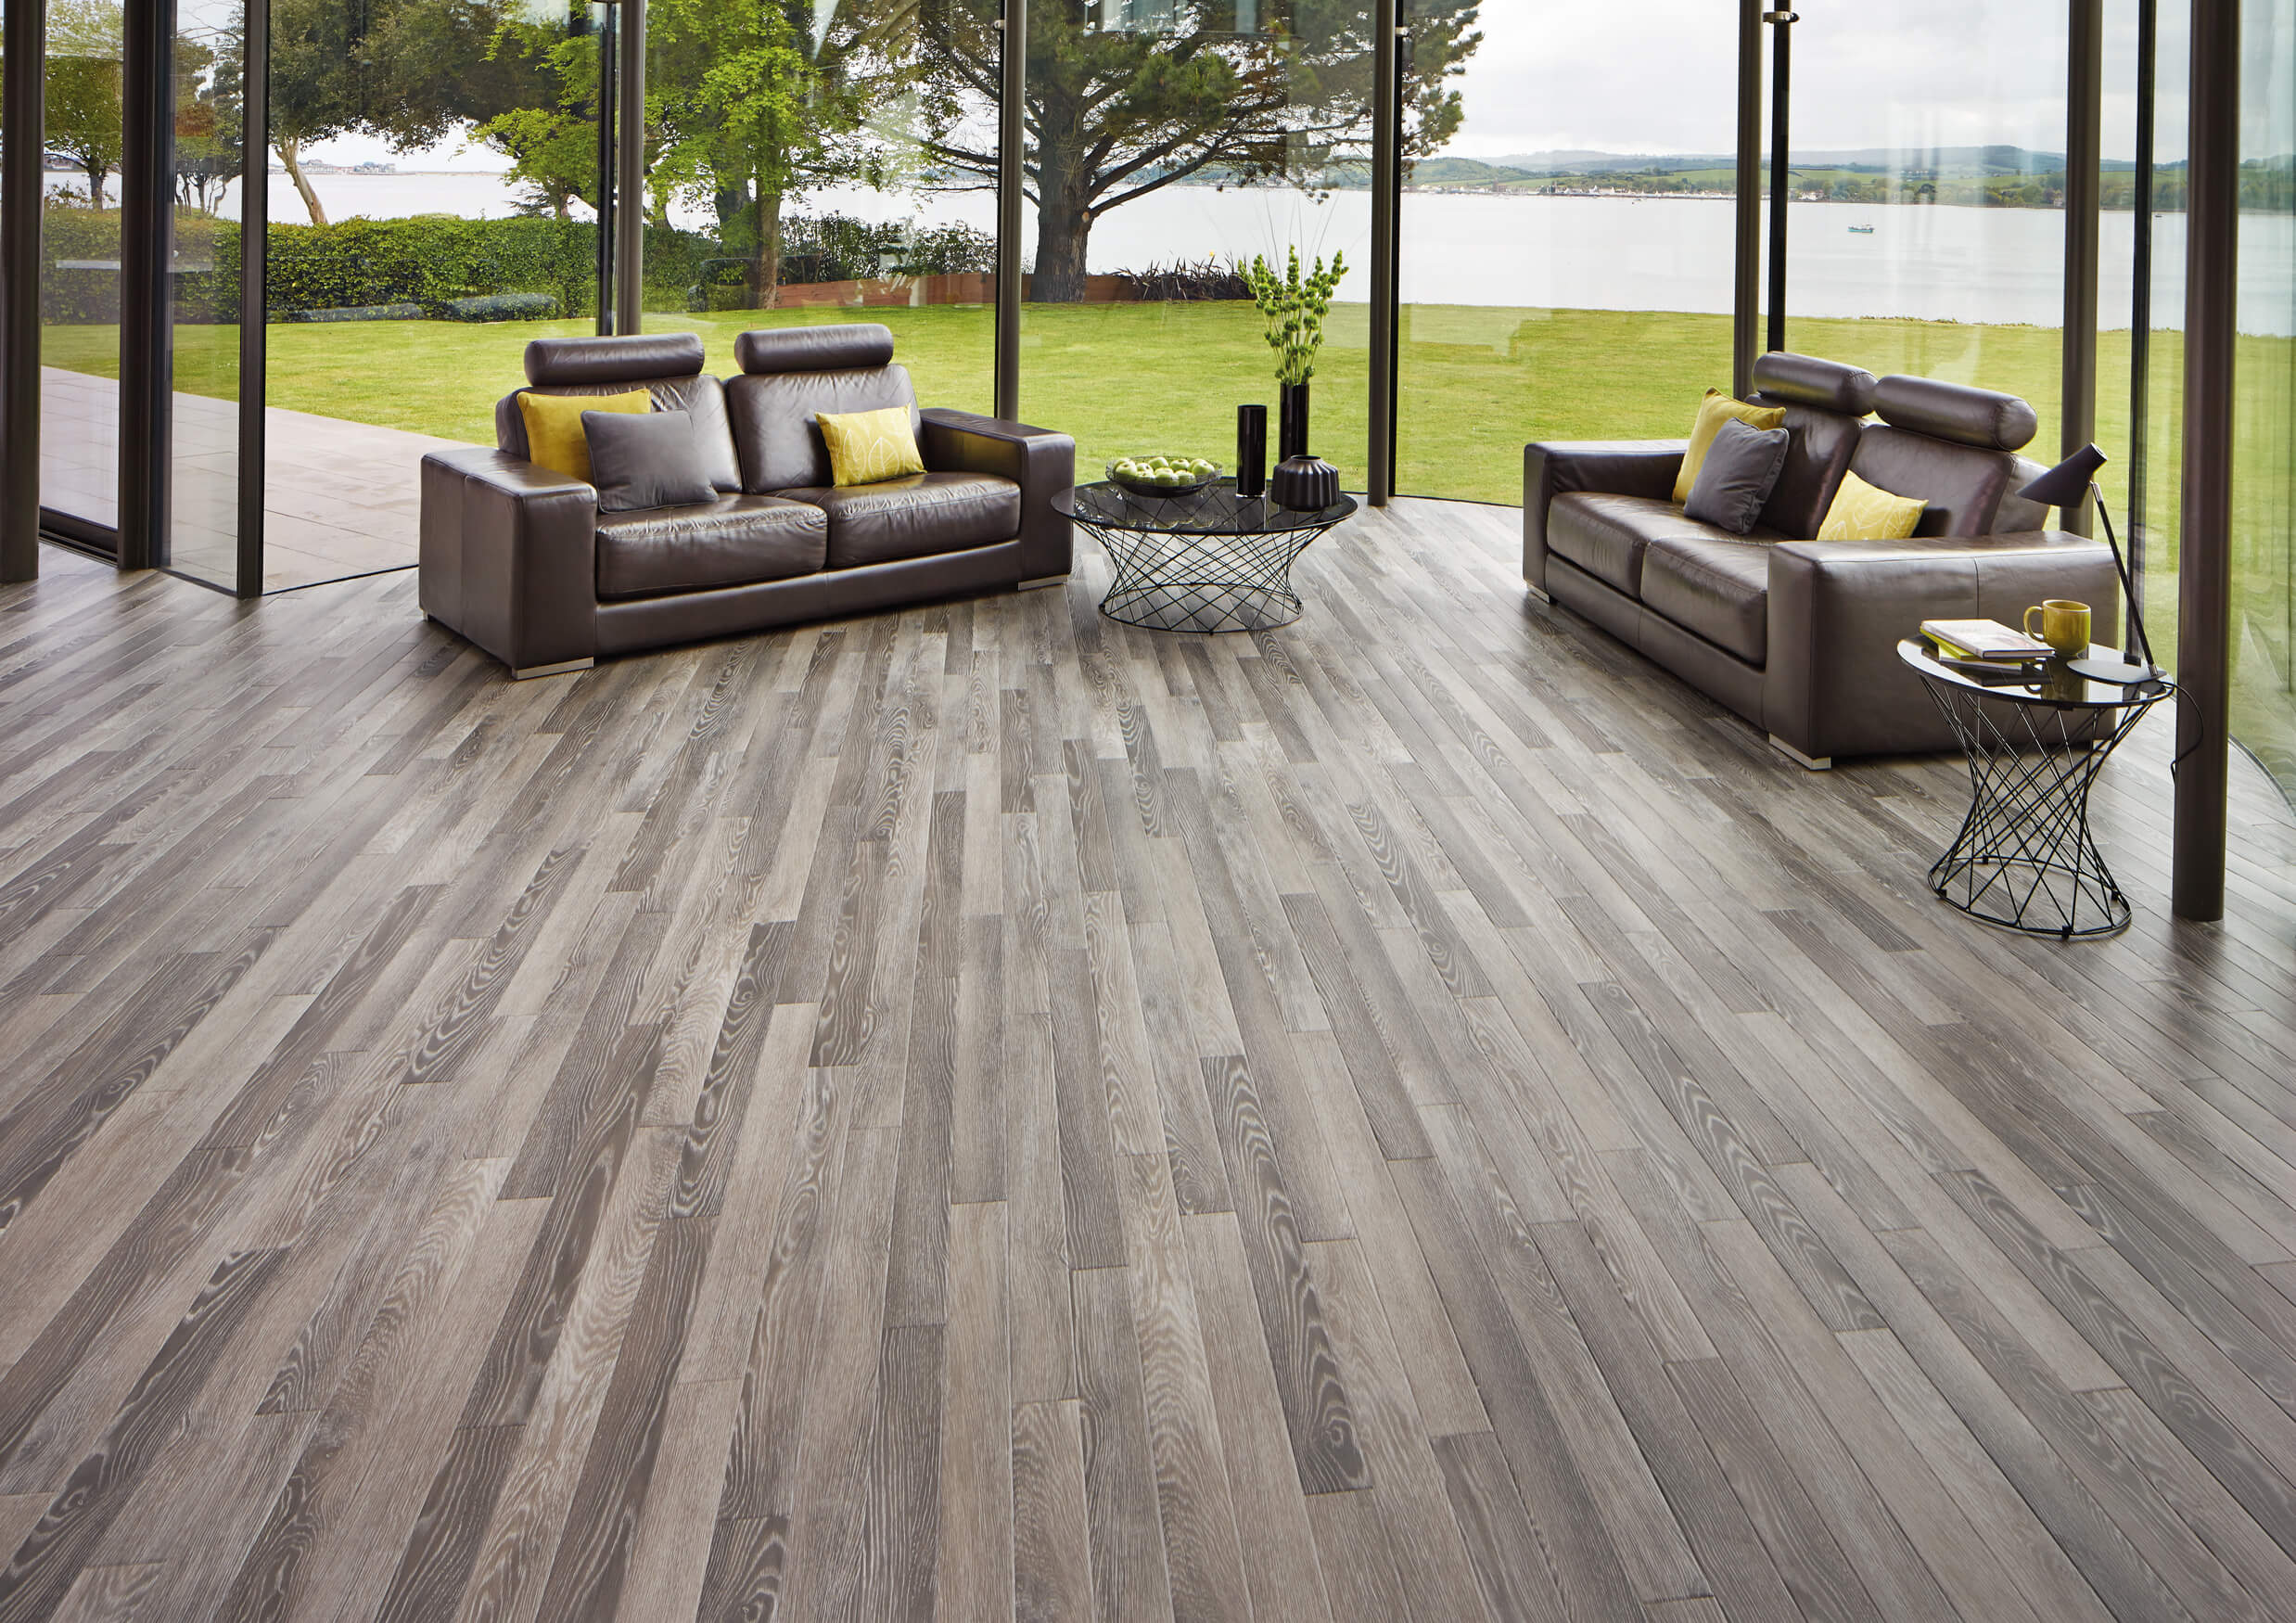 Flooring Suppliers Solihull  Birmingham  Solihull